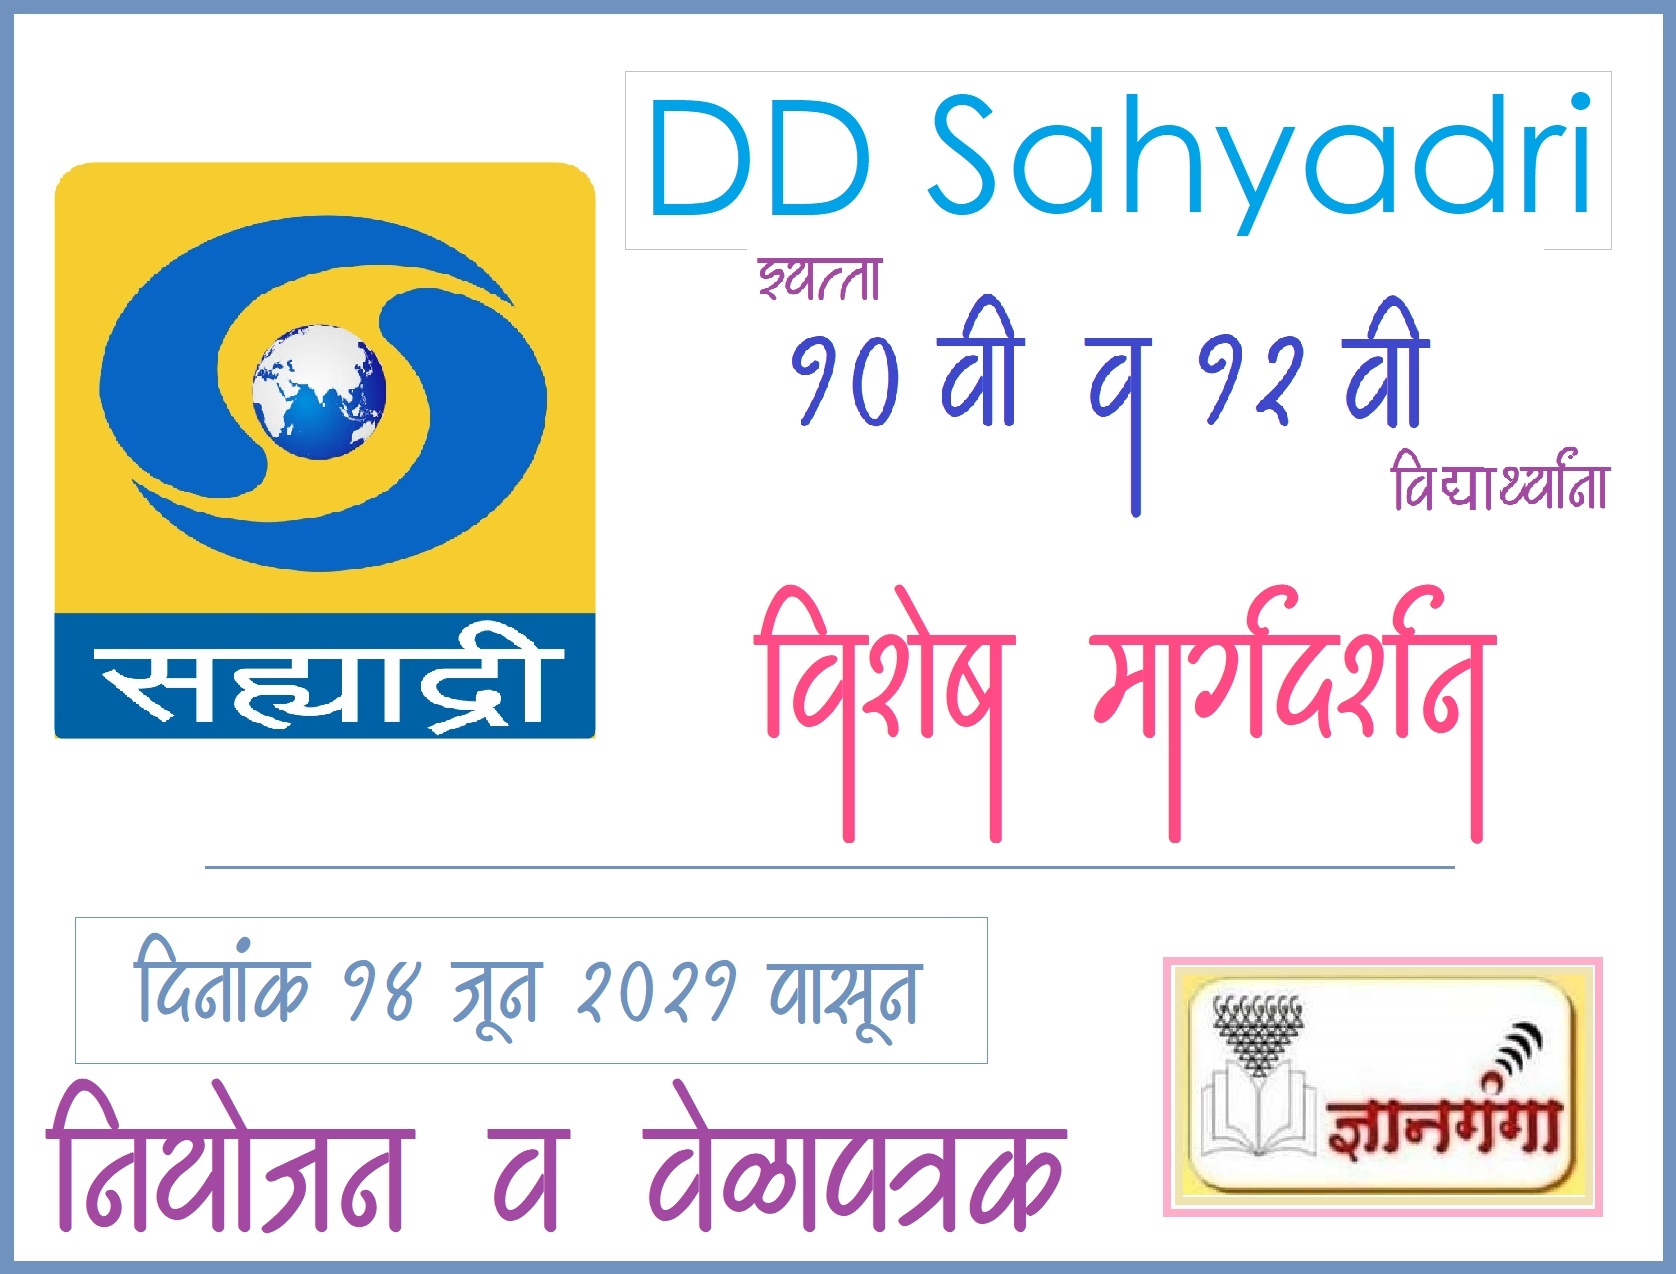 DD Sahyadri Lecture Series for 10th and 12th Students